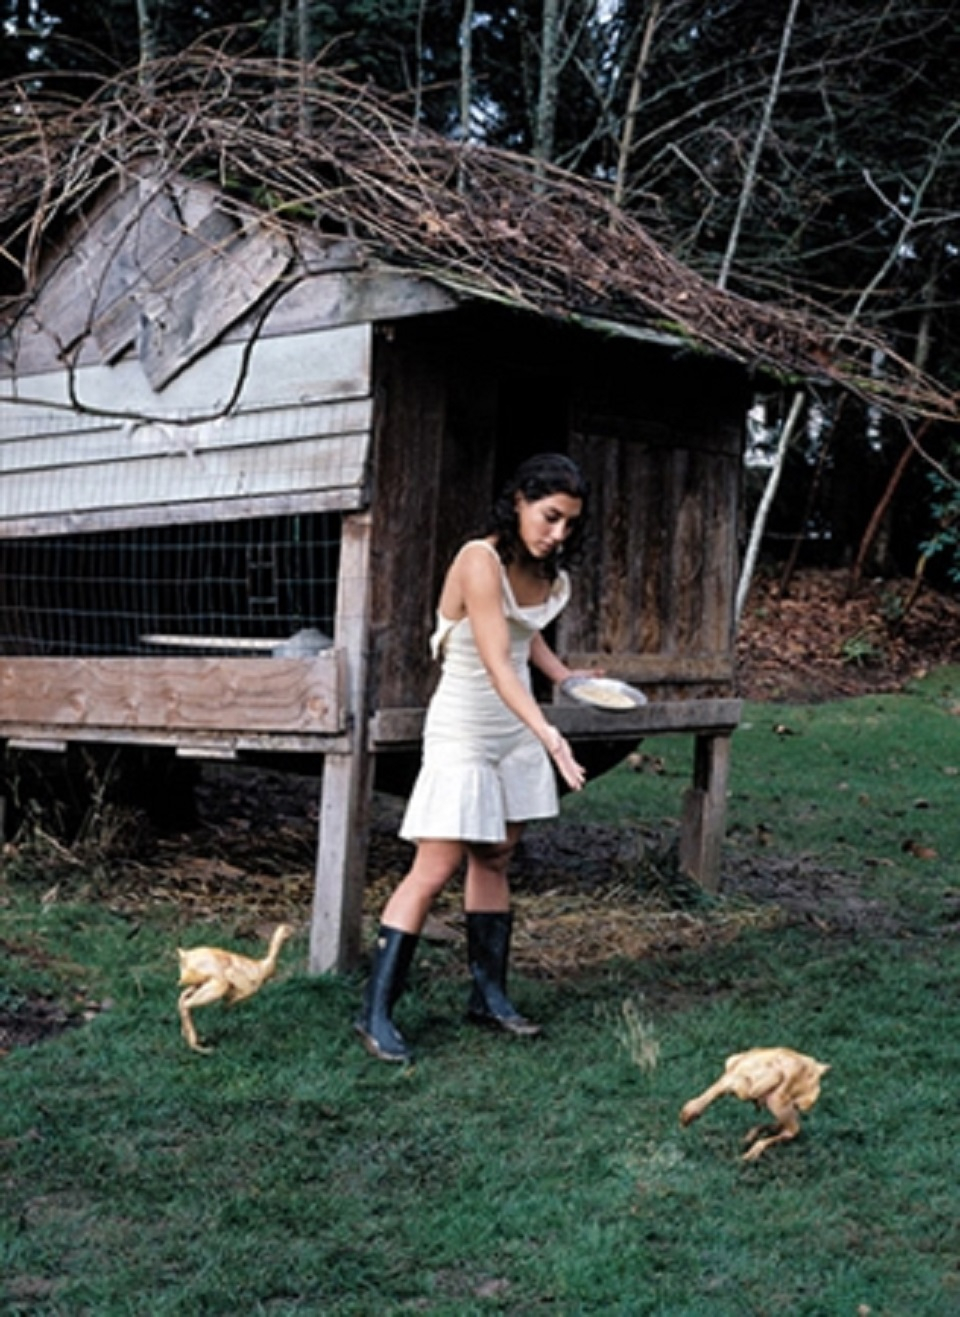 Margot Quan Knight – Chicken Feed (The Garden)